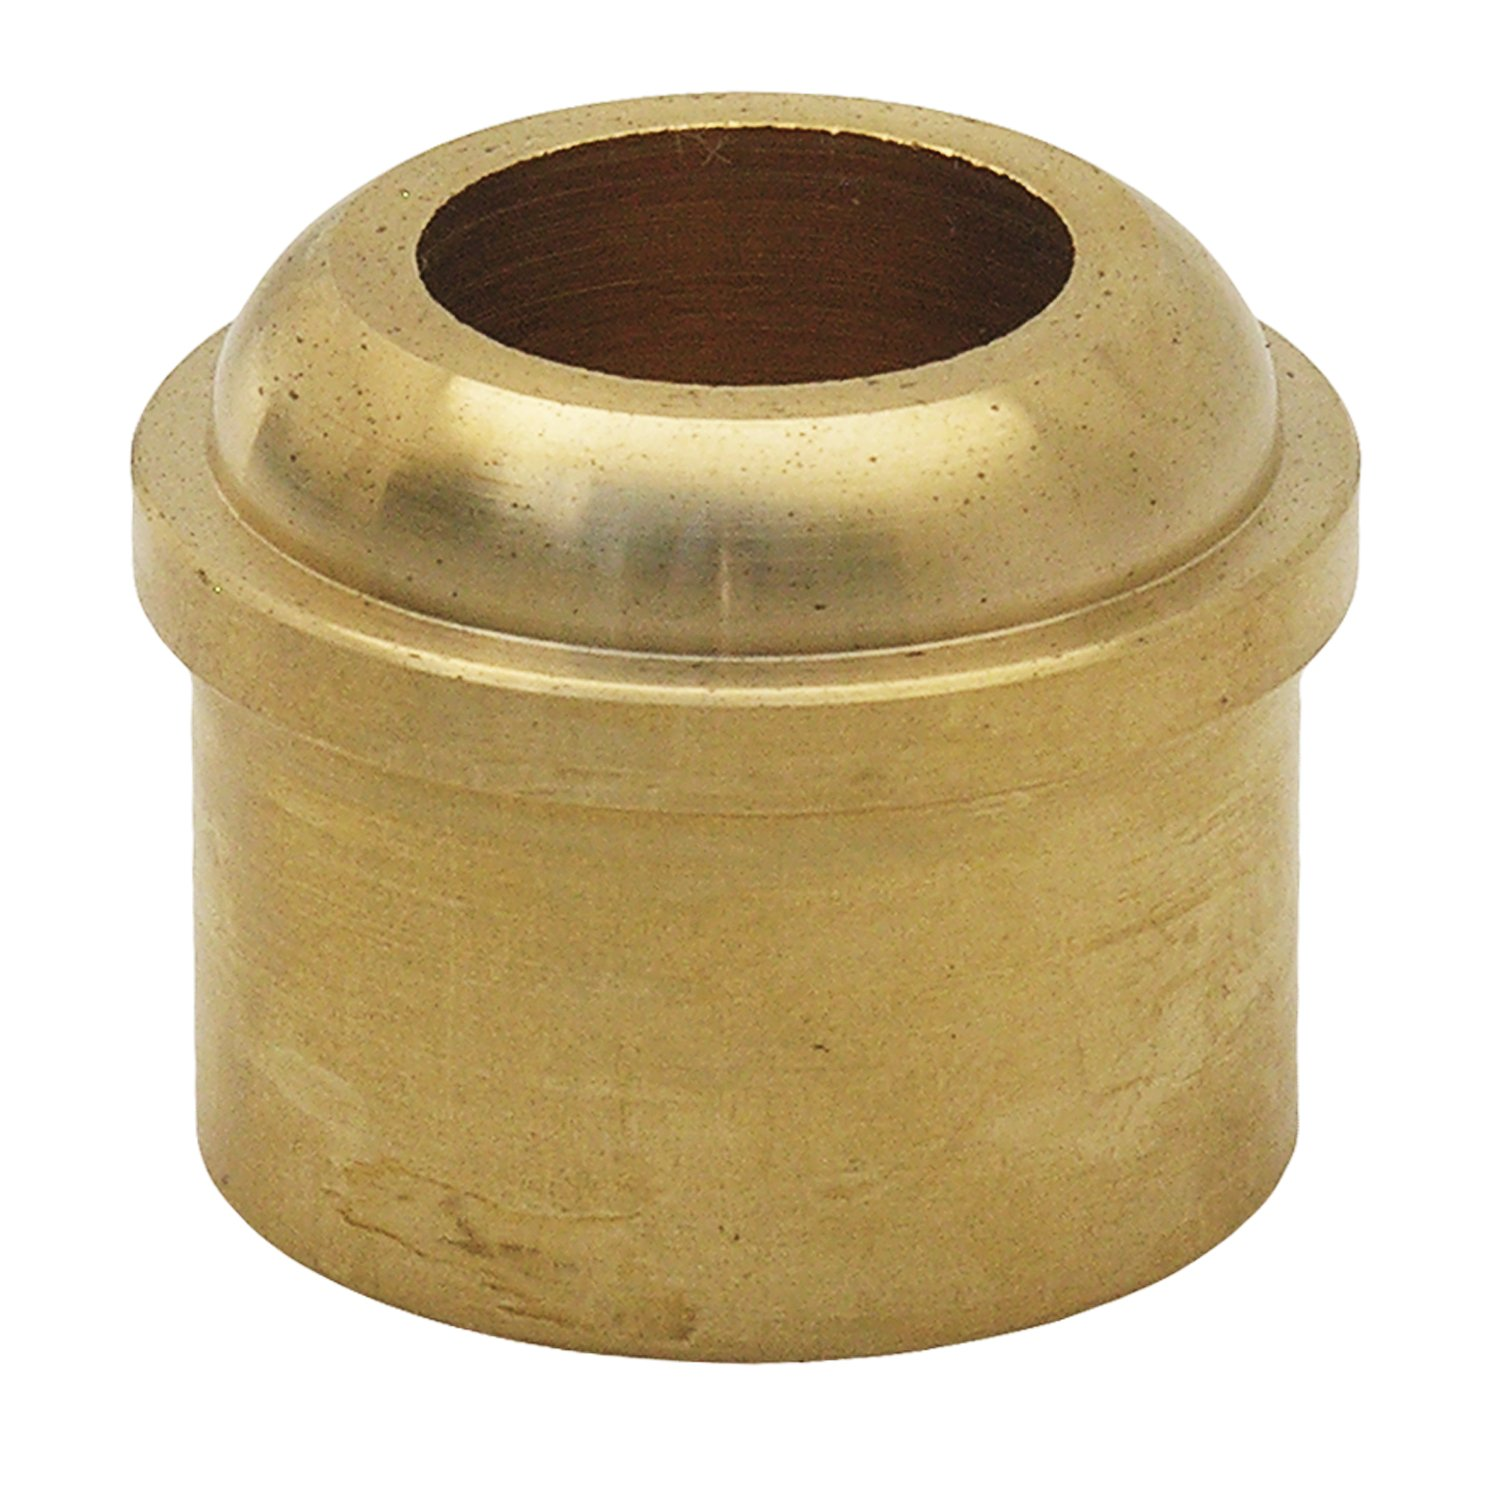 LASCO 0-0031 Brass Union Tailpiece for Price Pfister Tub/Shower Valve Female Pipe Thread OEM #970-020, 1/2'' by LASCO